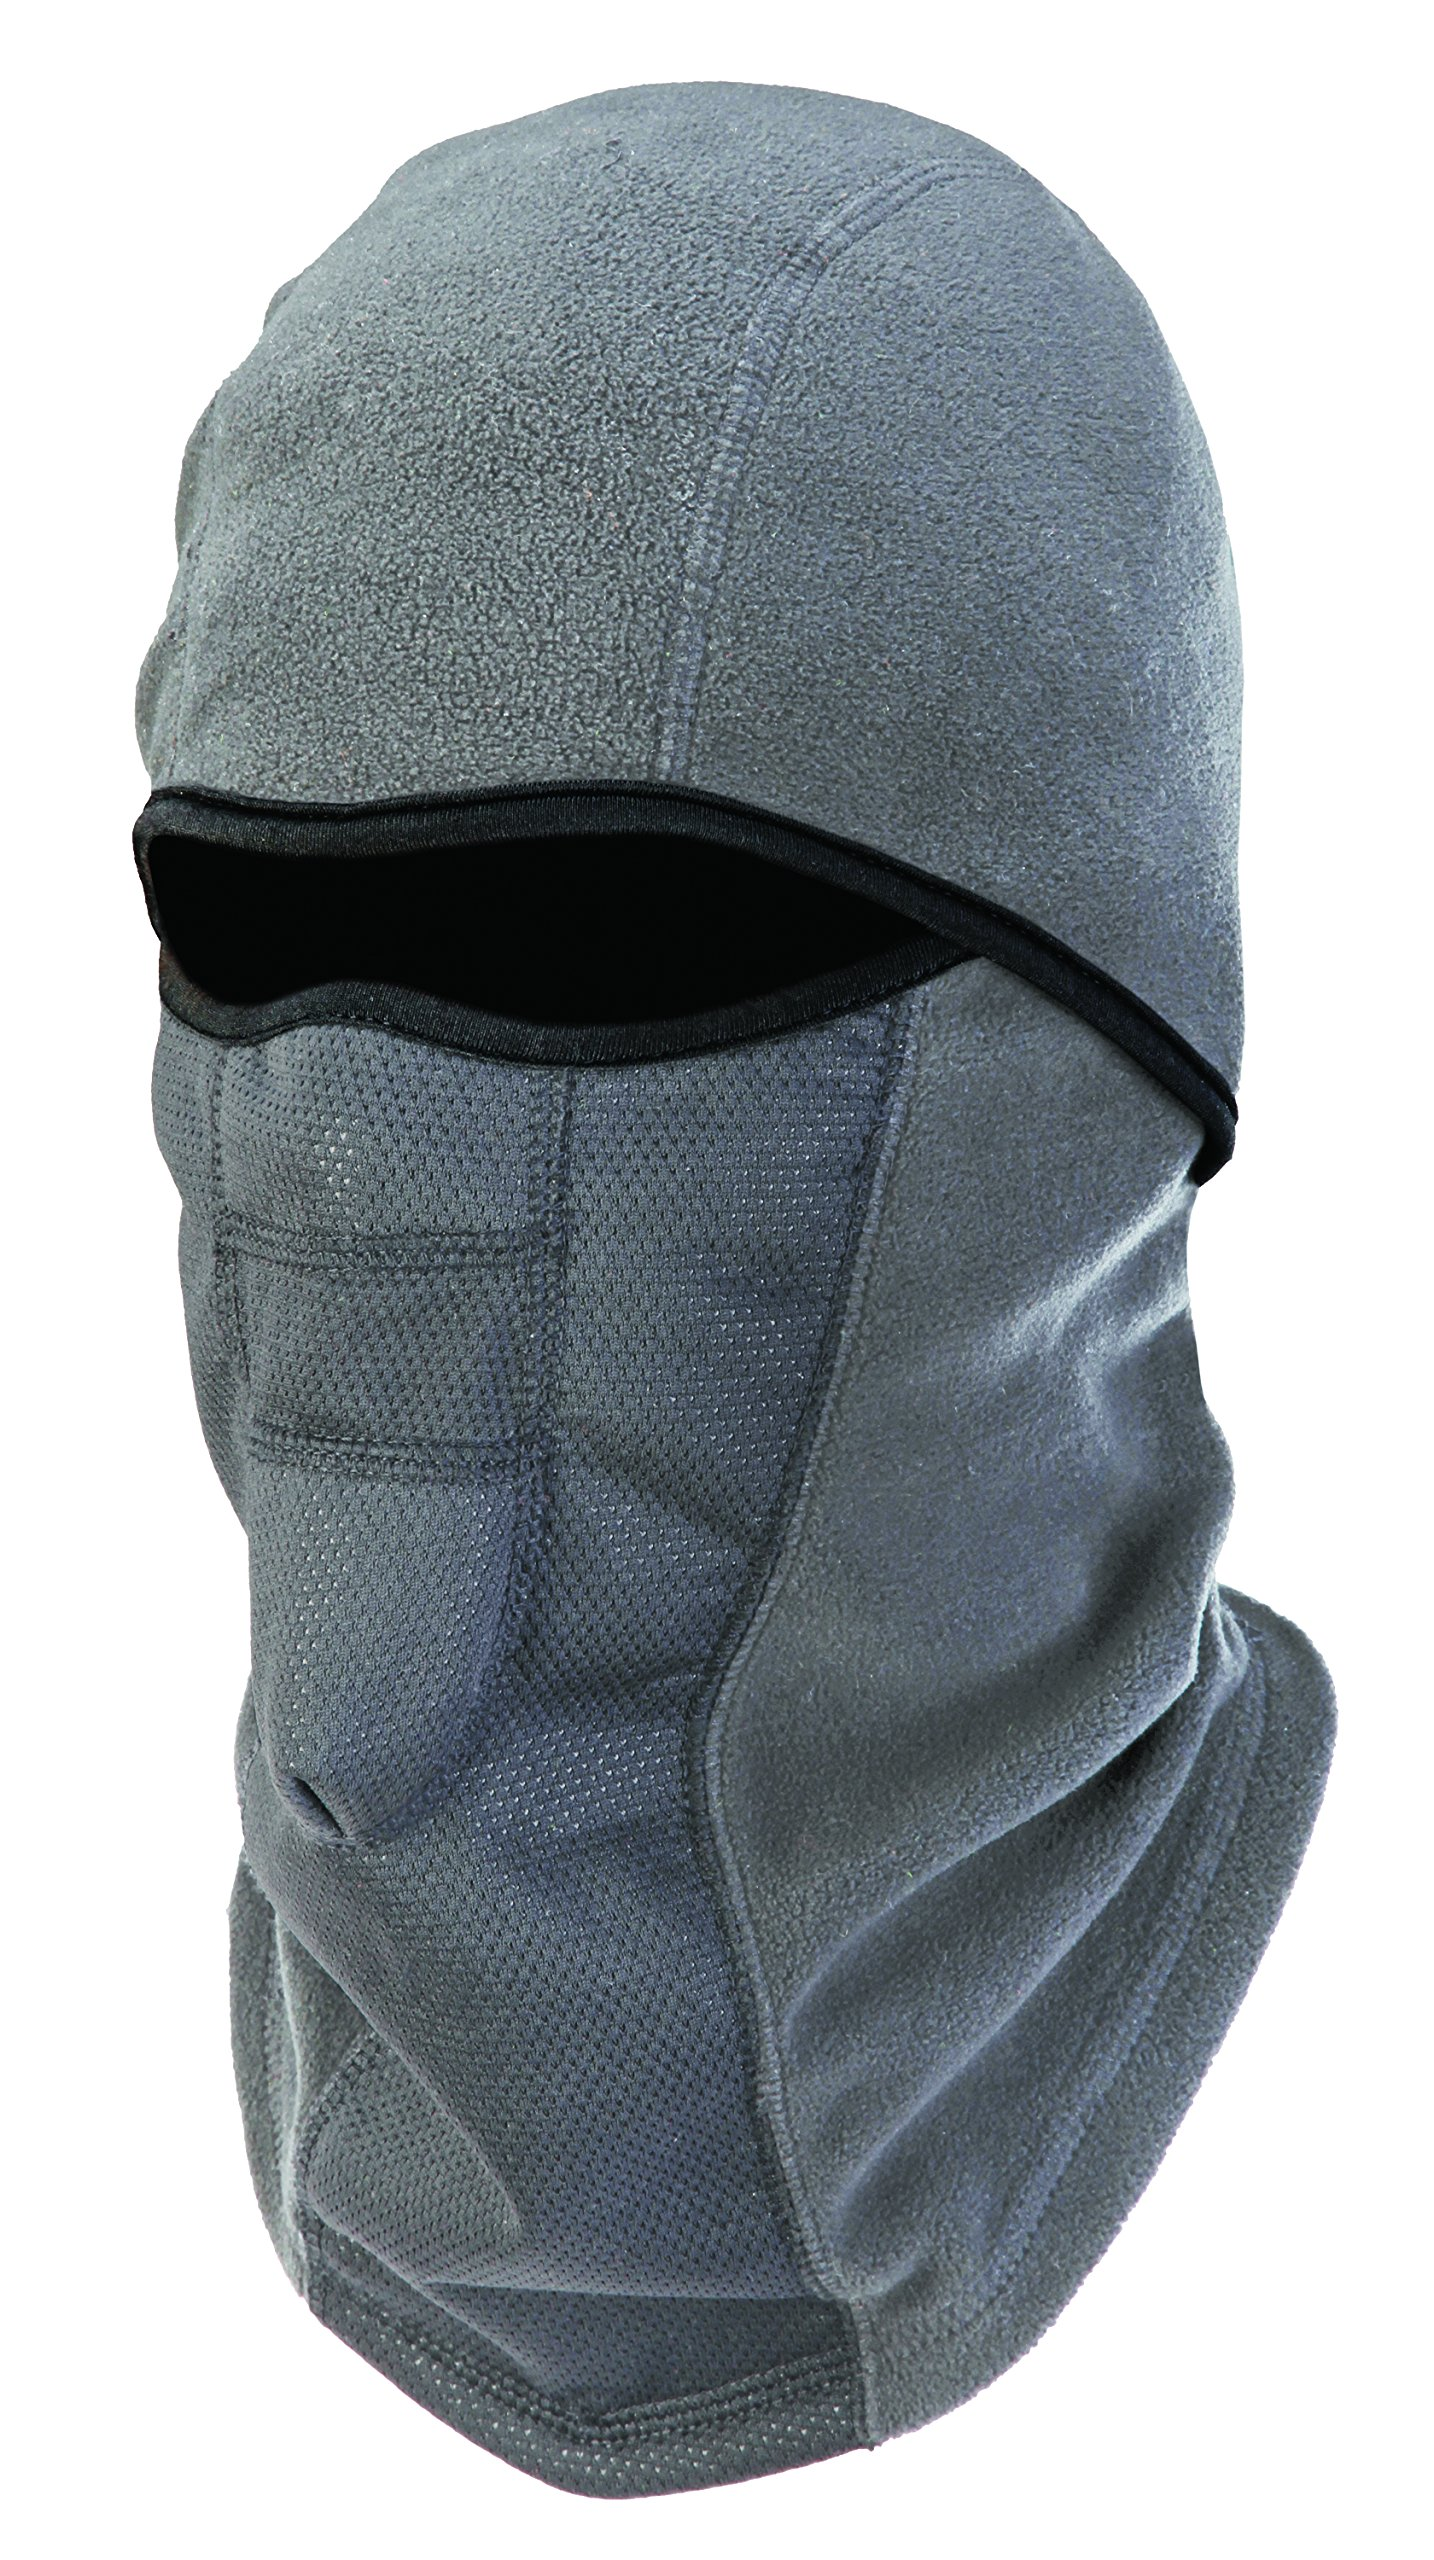 Ergodyne N-Ferno 6823 Winter Ski Mask Balaclava, Wind-Resistant Face Mask, Thermal Fleece, Gray by Ergodyne